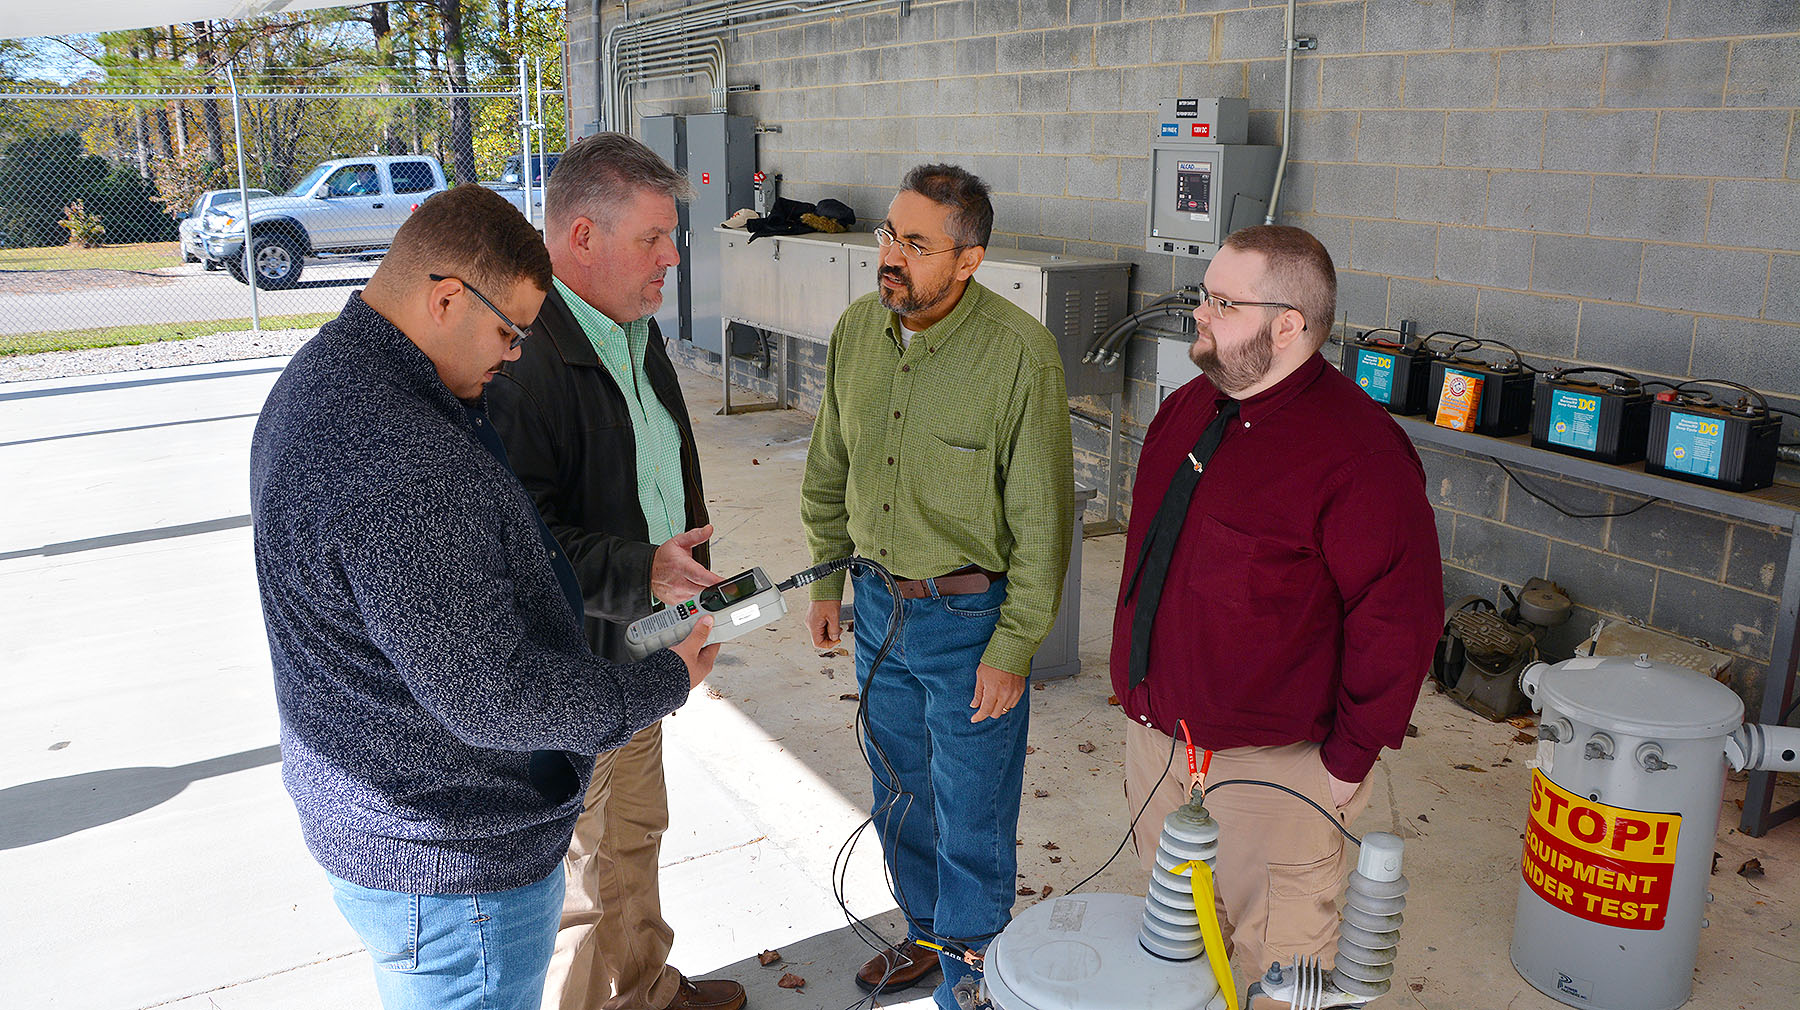 EUSRT students and instructor stand in substation with test device